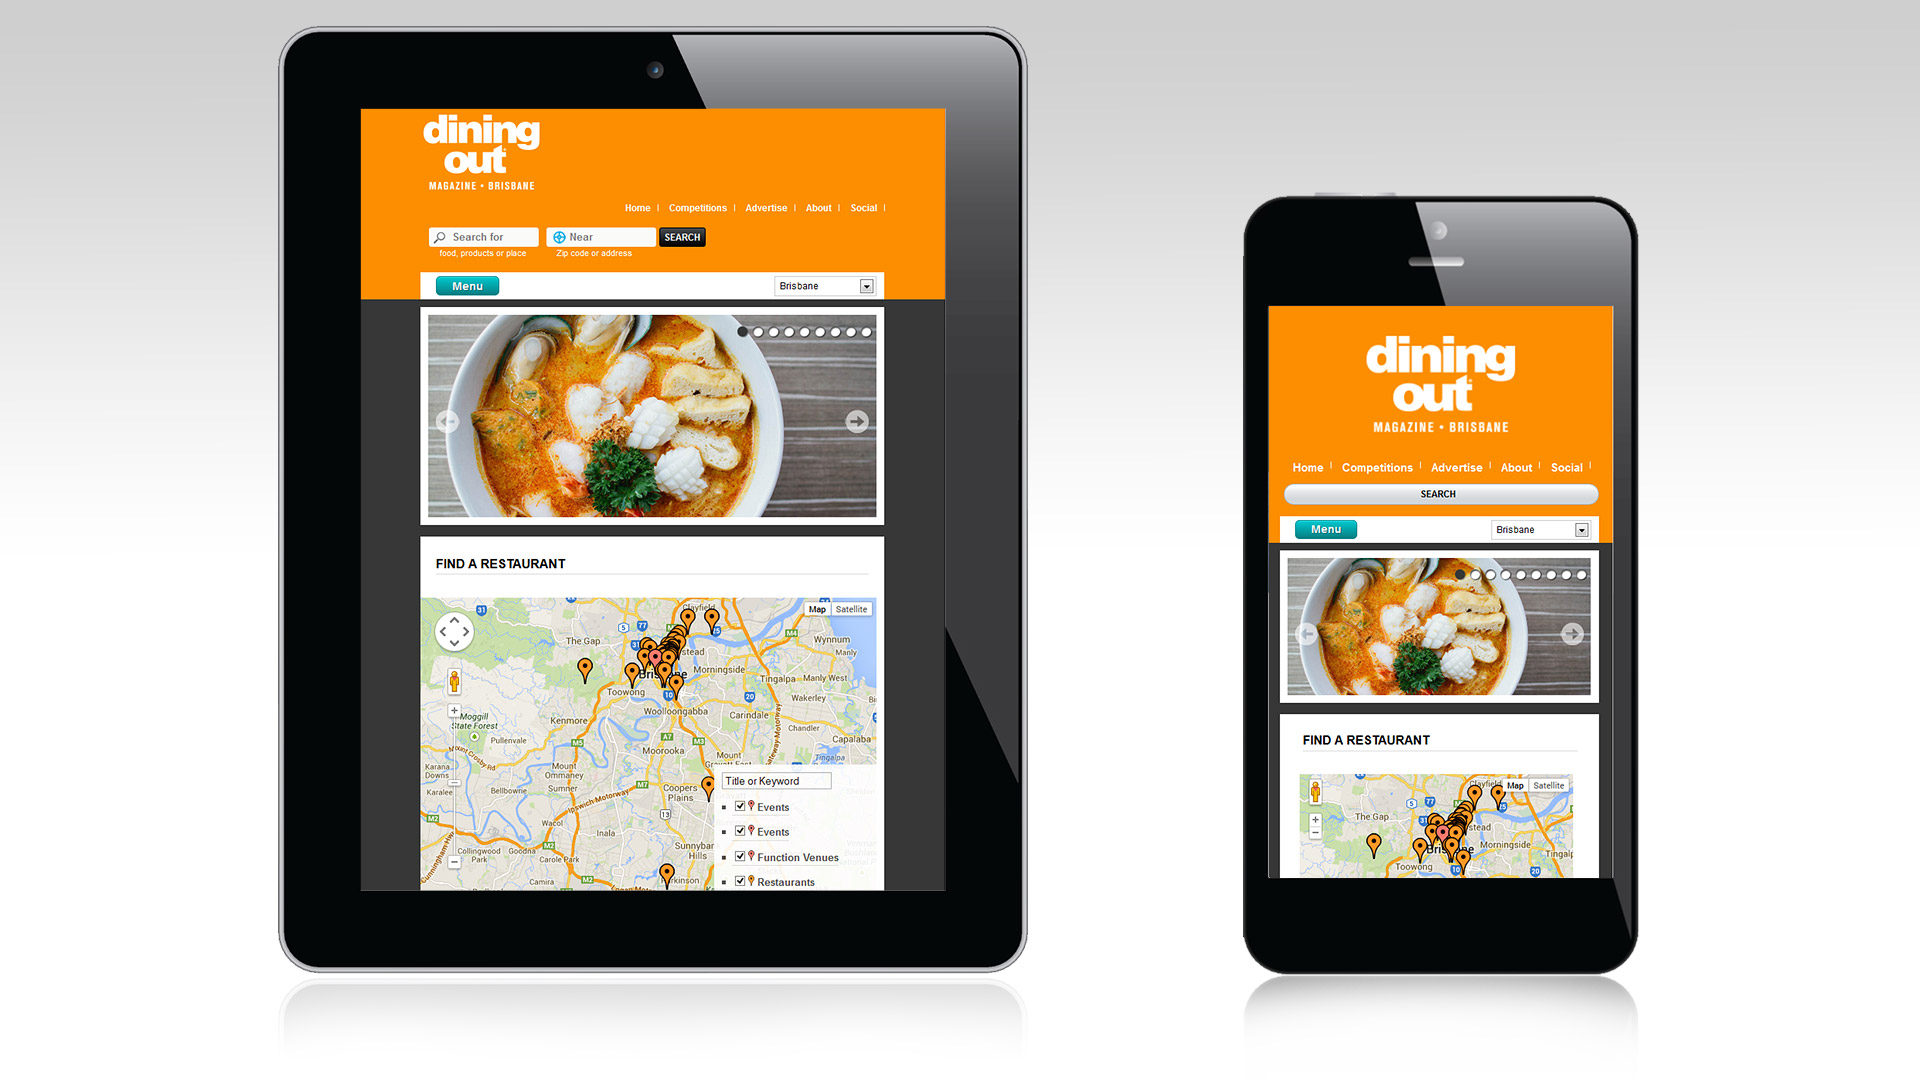 webdesign_diningout03